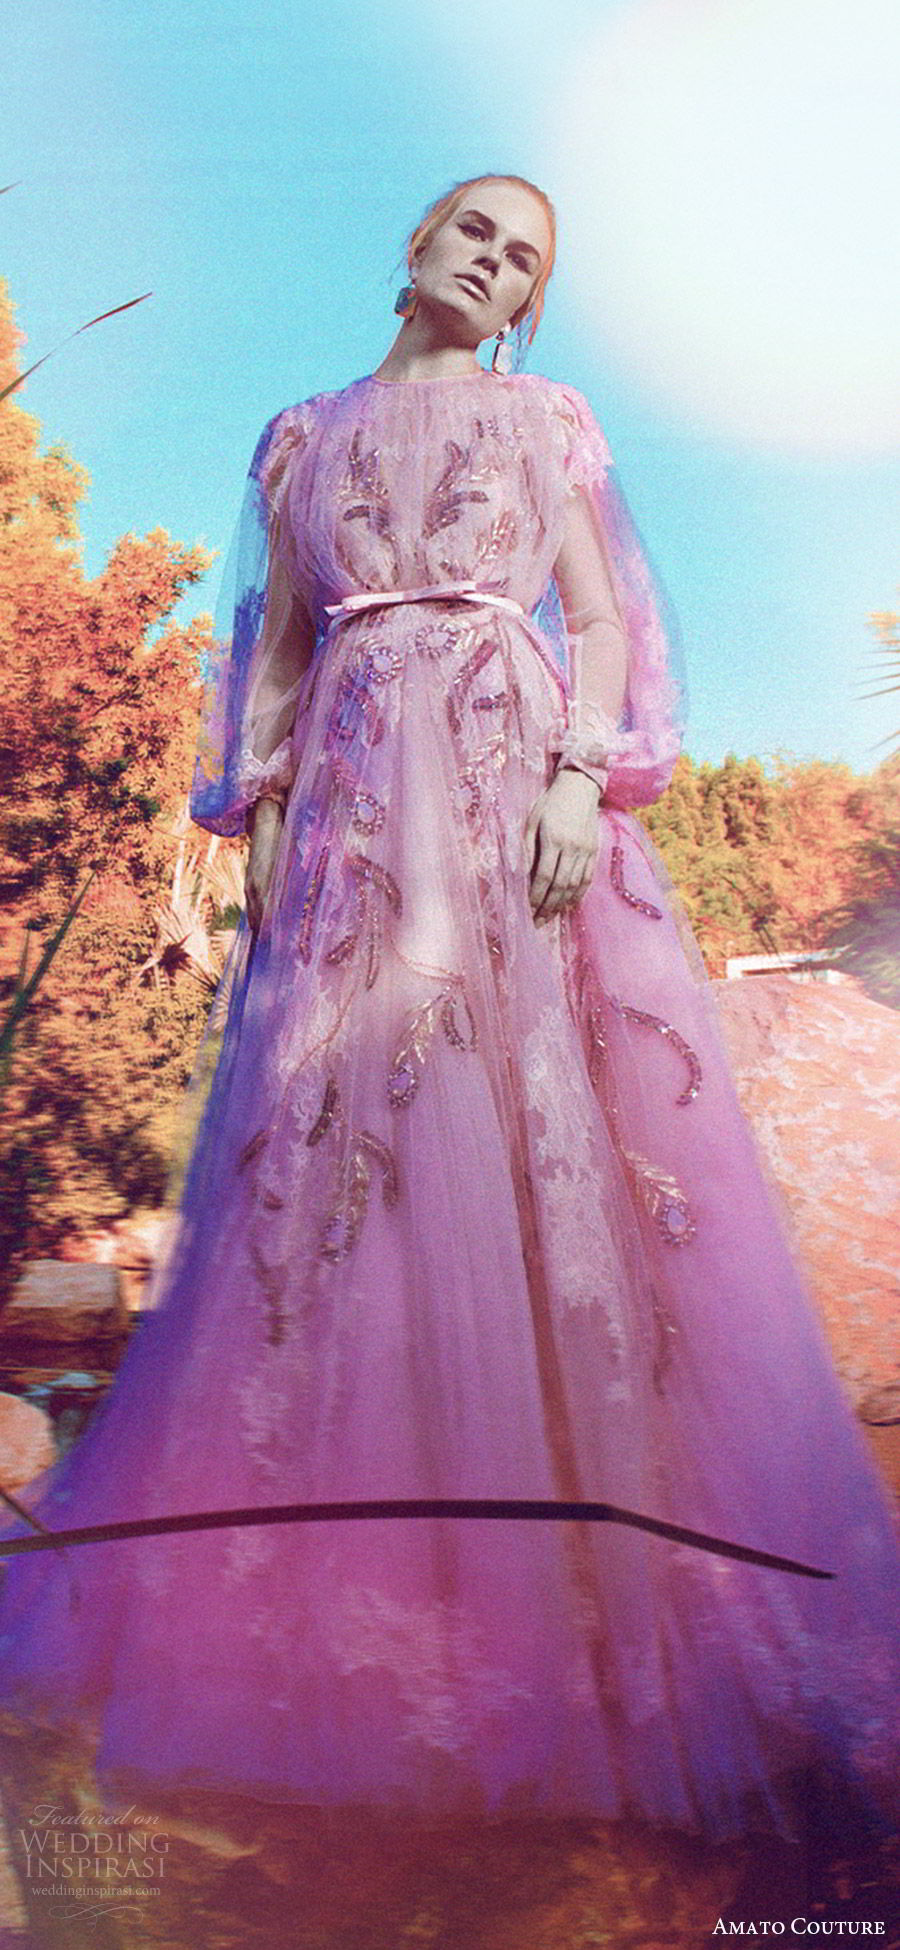 amato couture 2017 secret garden collection illusion bishop sleeves high neck illusion embellished a line dress blush (4) mv romantic